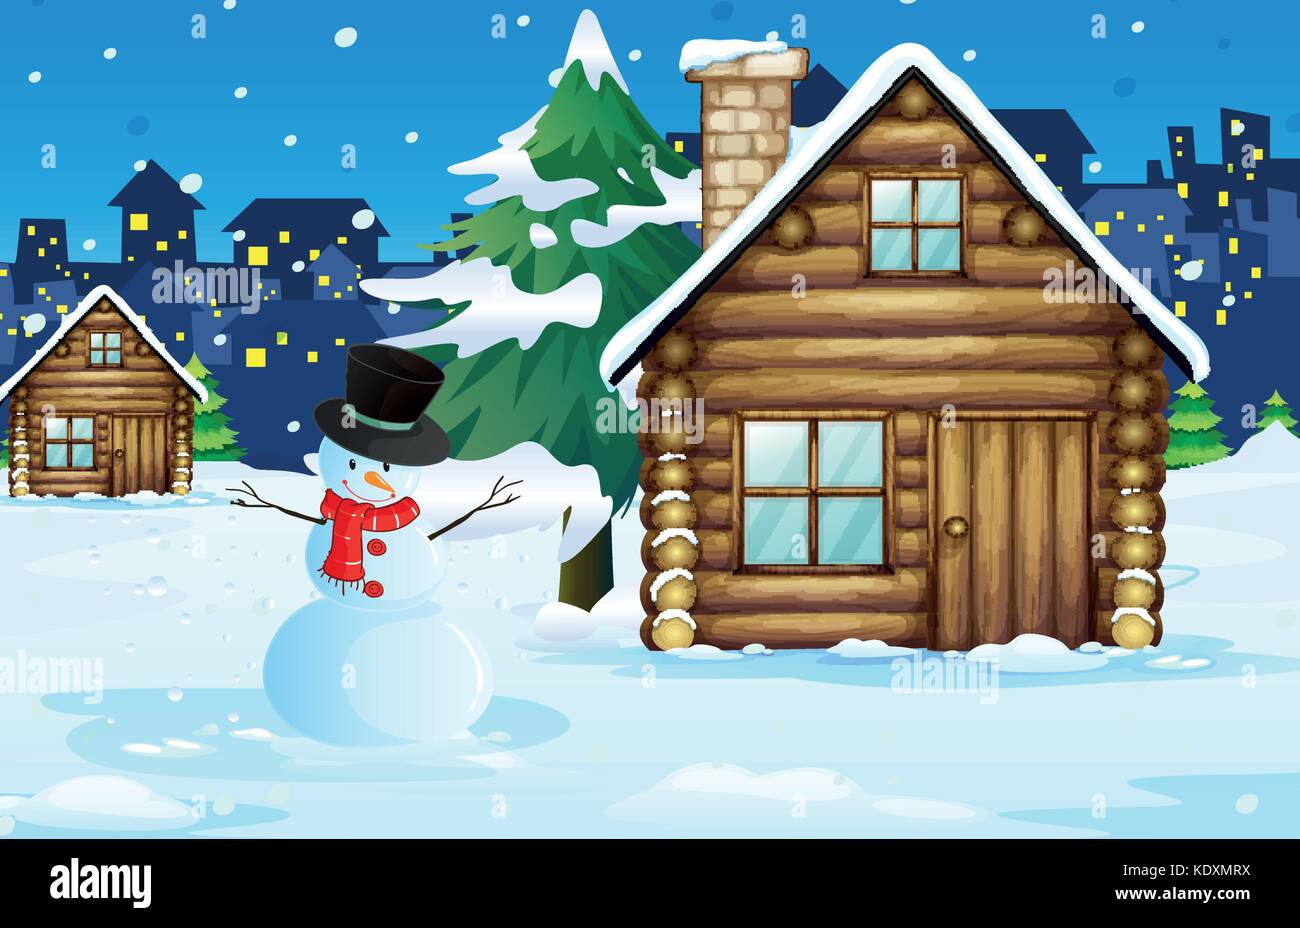 Wood cabin in the snow field illustration - Stock Vector